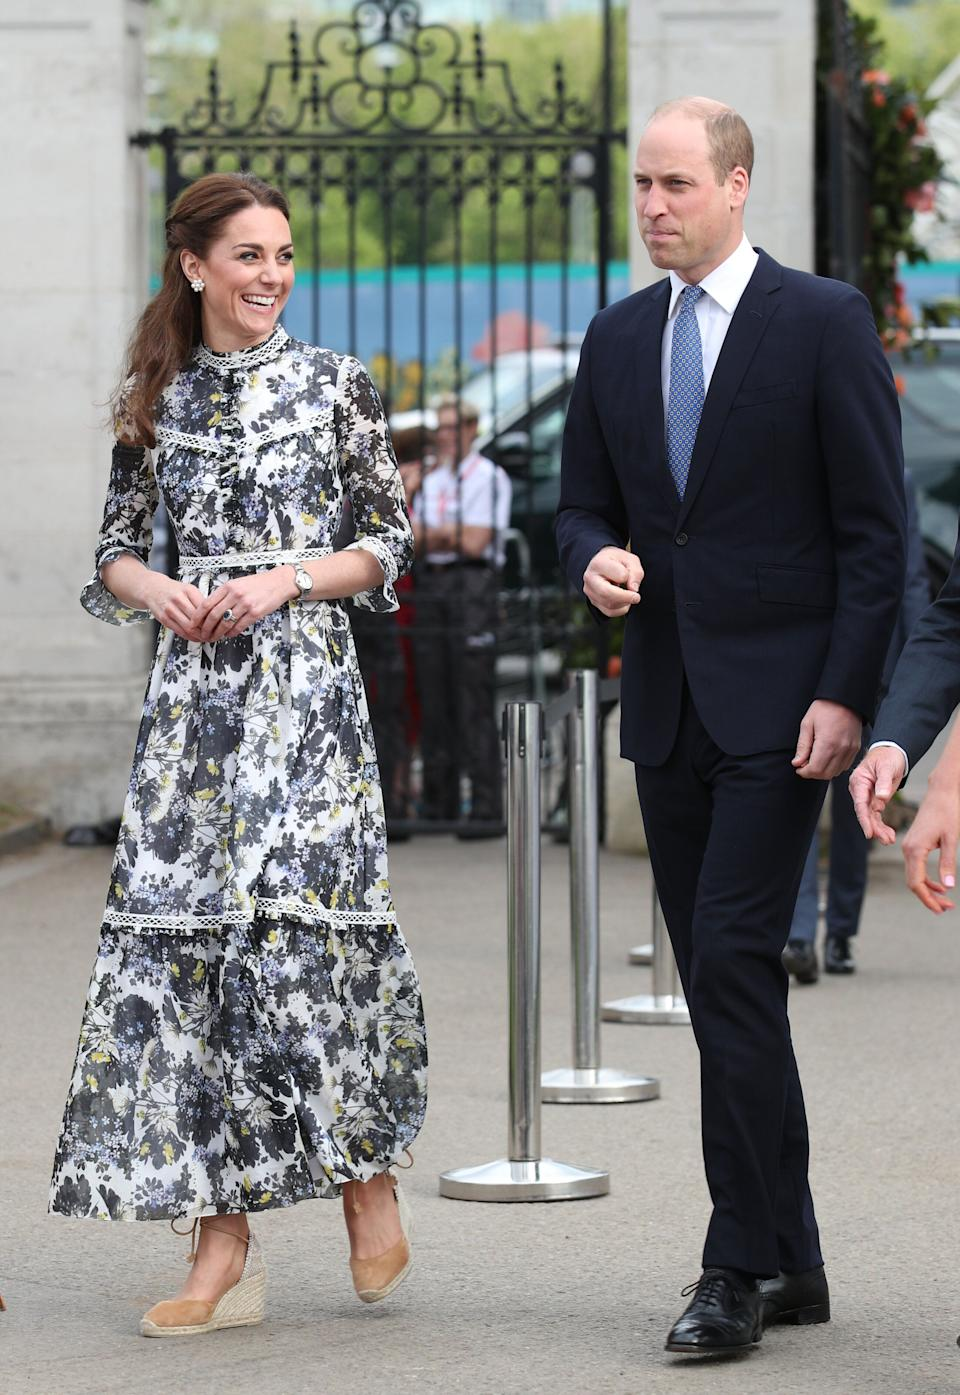 The Duke and Duchess of Cambridge arrive at the RHS Chelsea Flower Show at the Royal Hospital Chelsea, London [Photo: PA]